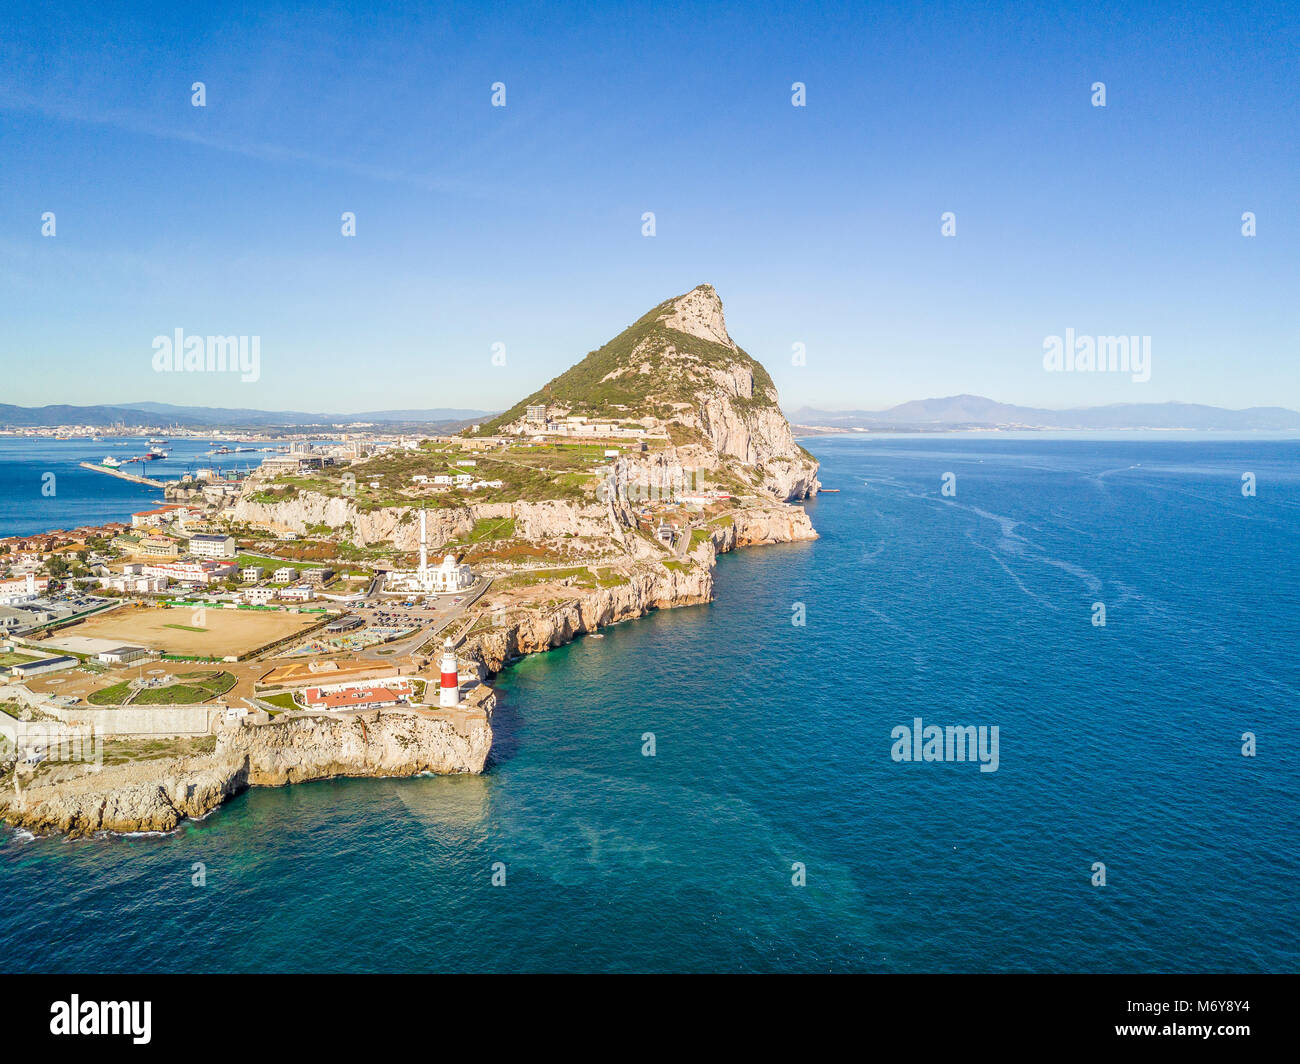 Famous Gibraltar rock on oversea British territory, Gibraltar, Iberian Peninsula, Europe - Stock Image